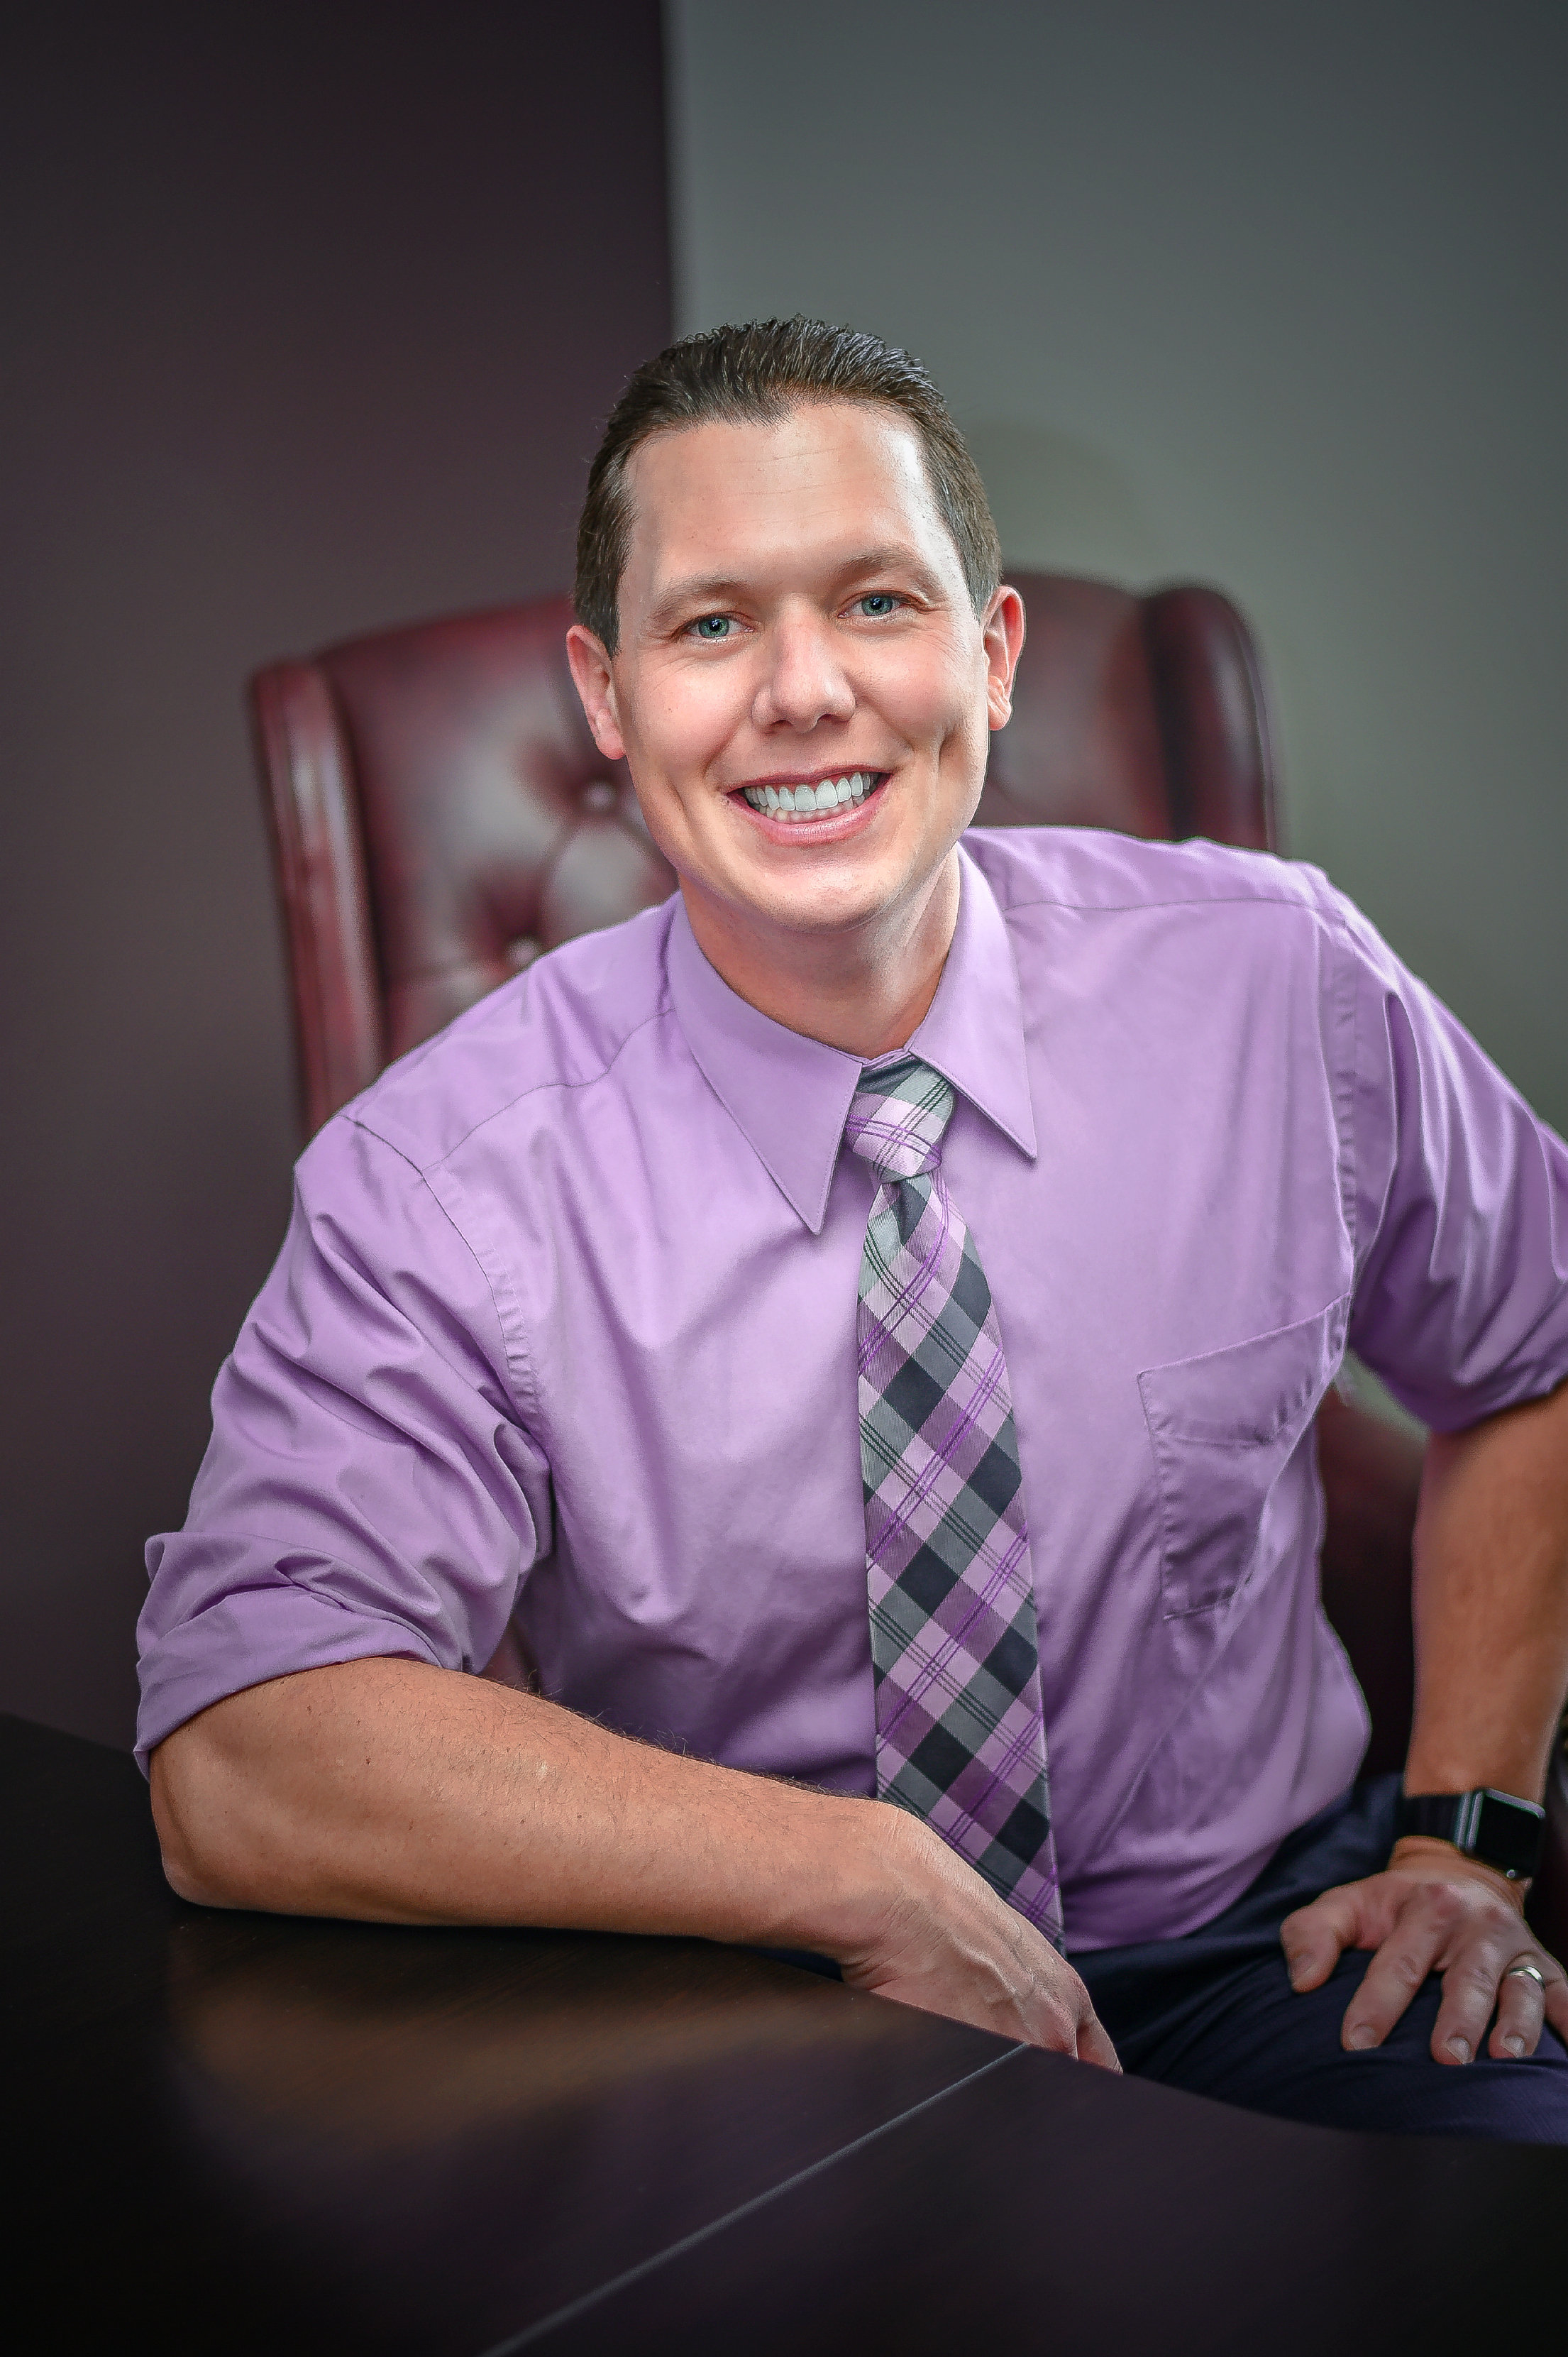 Dayley Dental Cosmetic & Family Dentistry image 3